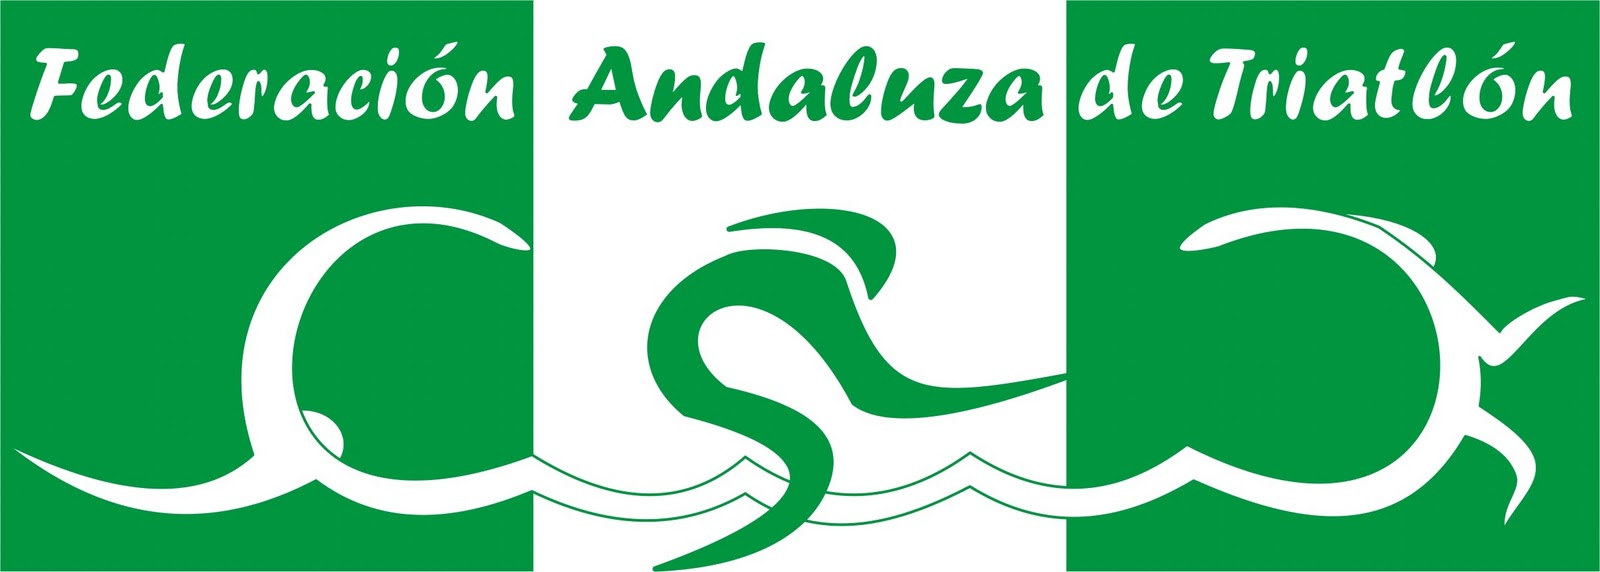 Logo triatlon